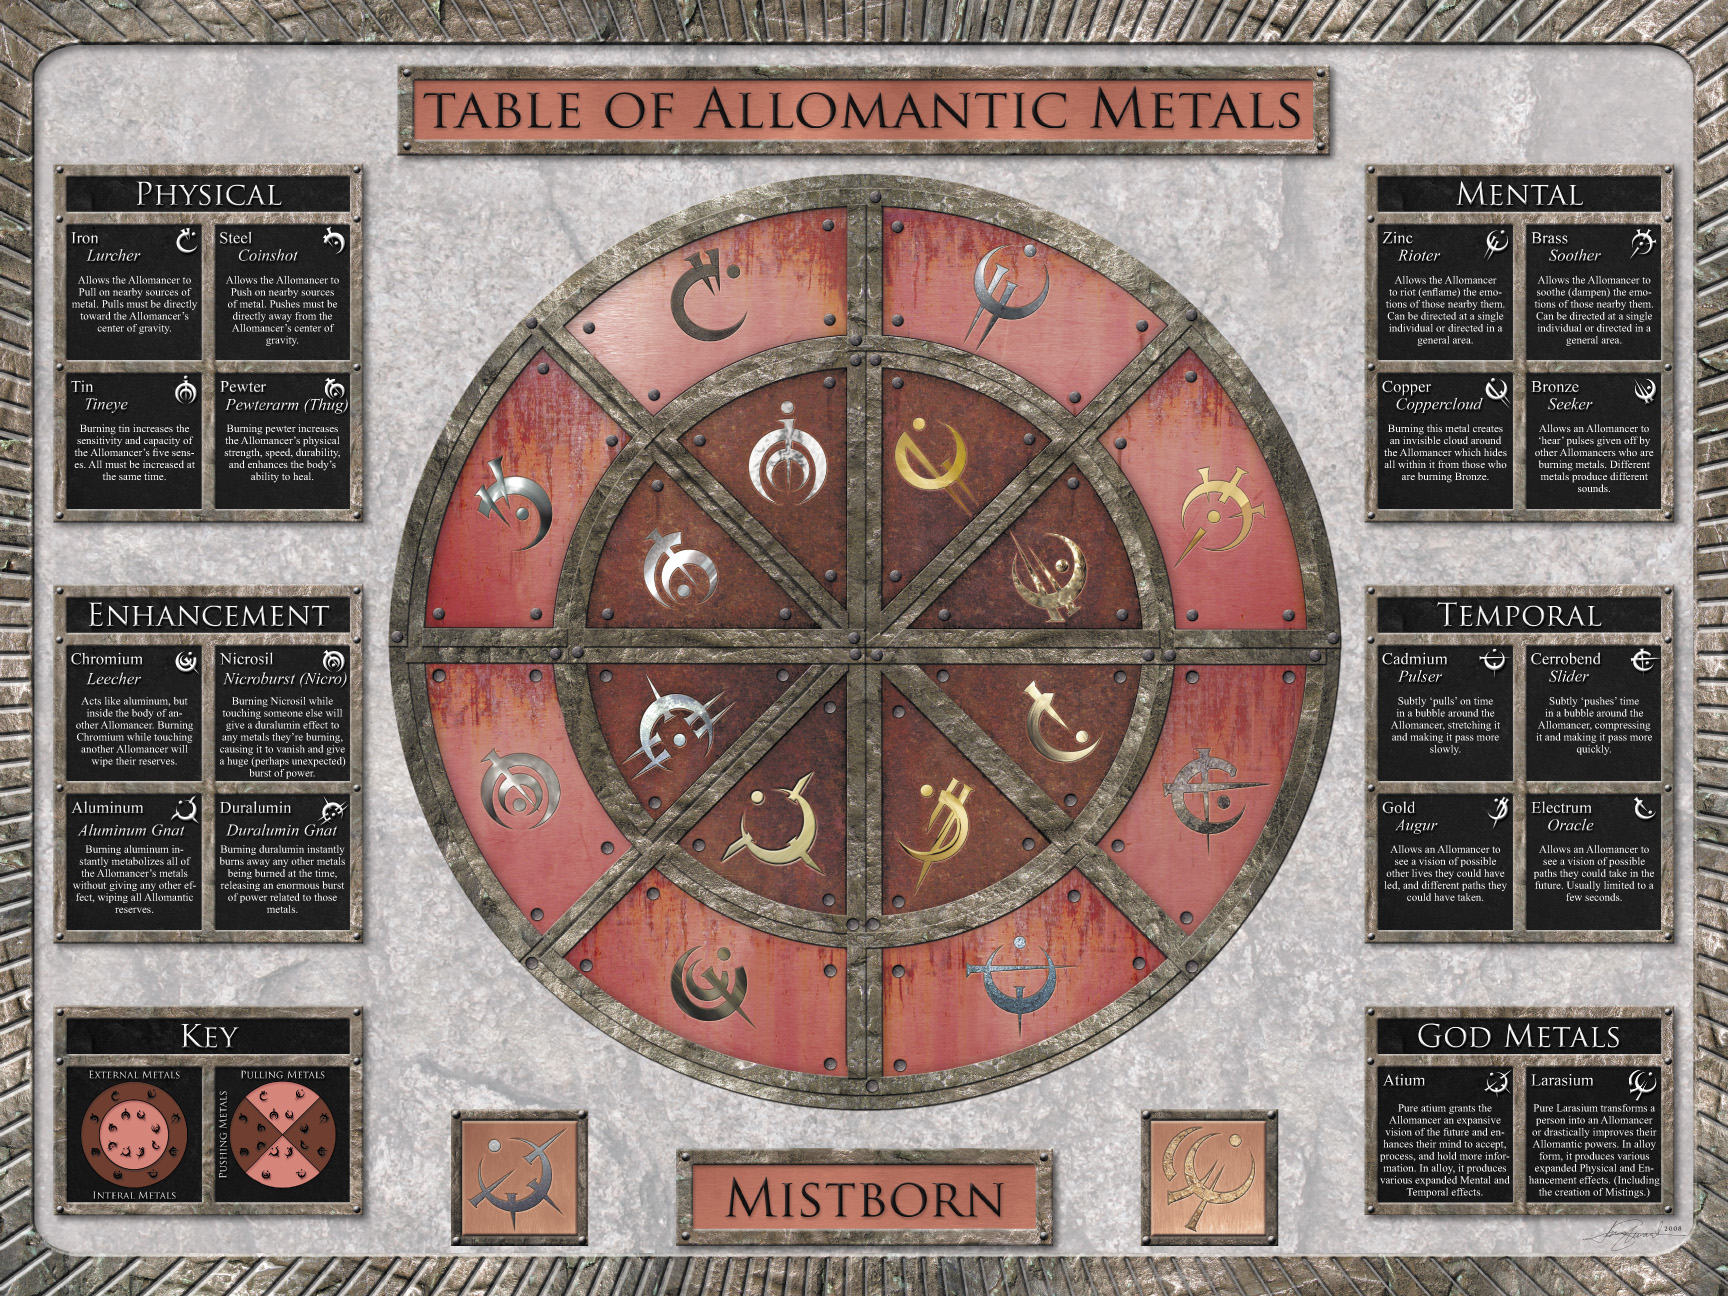 Allomantic Table of Metals